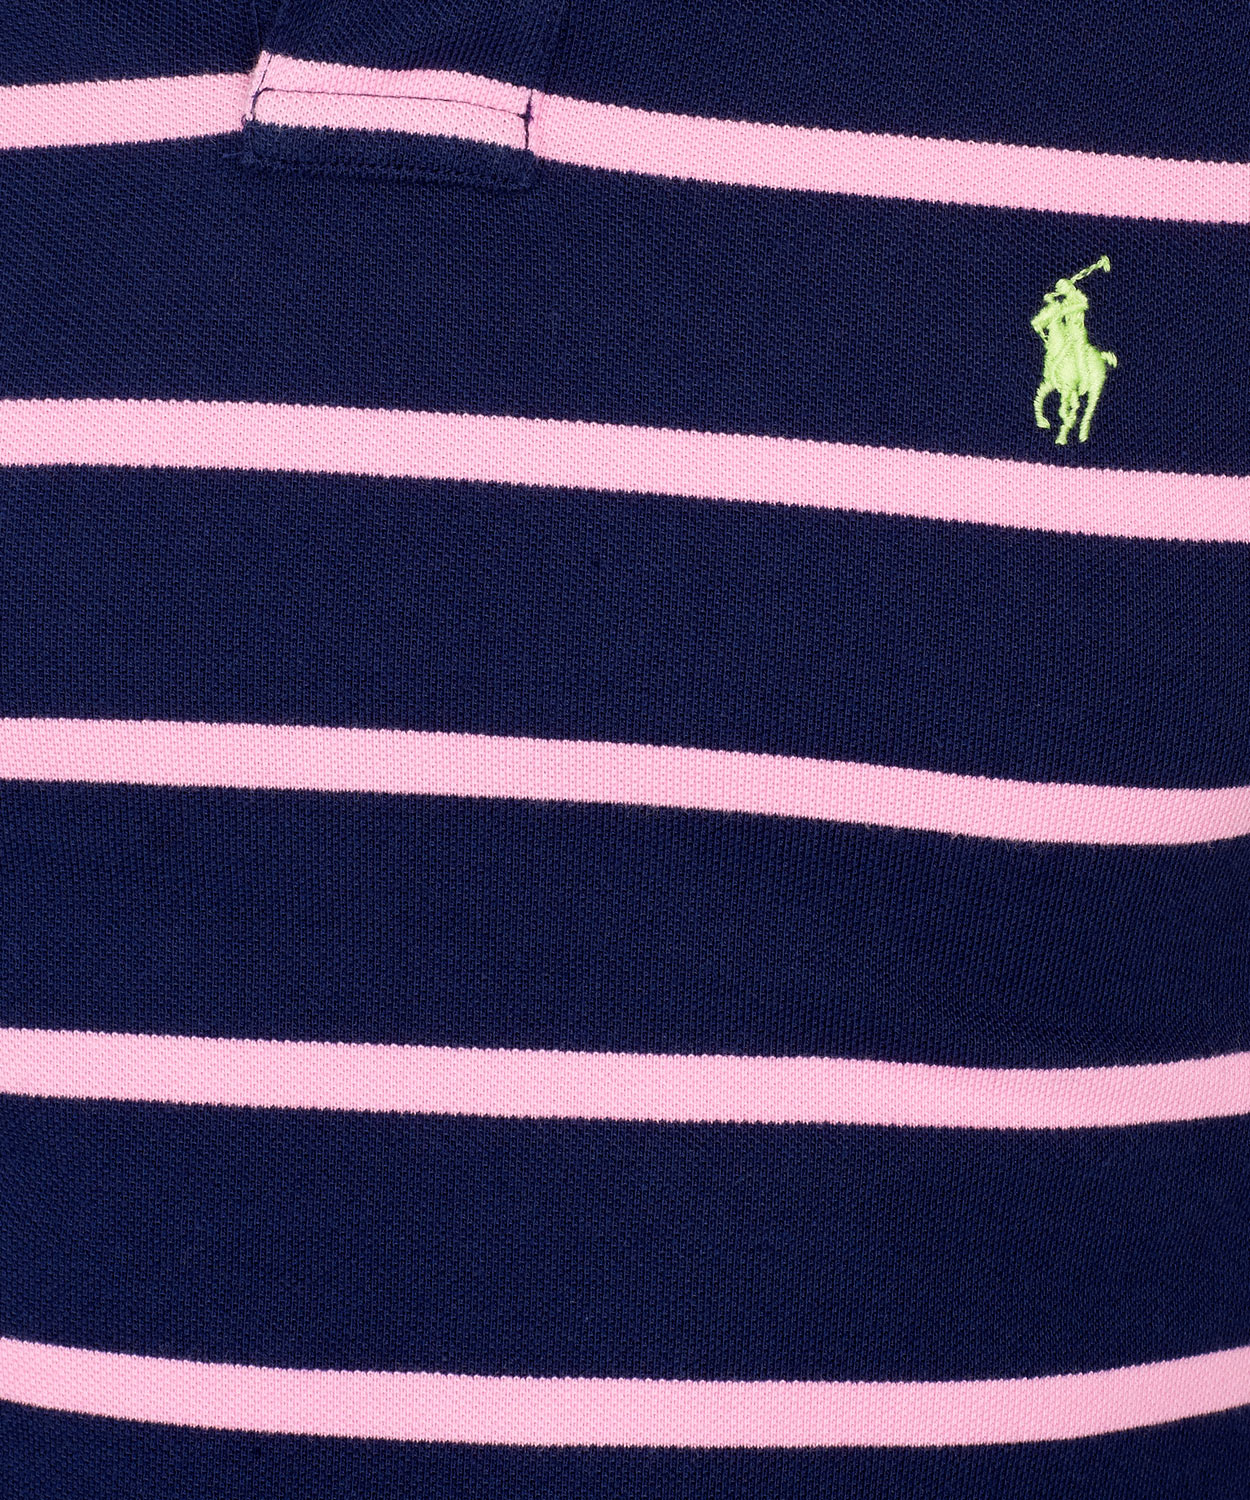 Lyst  Polo Ralph Lauren Navy and Pink Stripe Polo Shirt